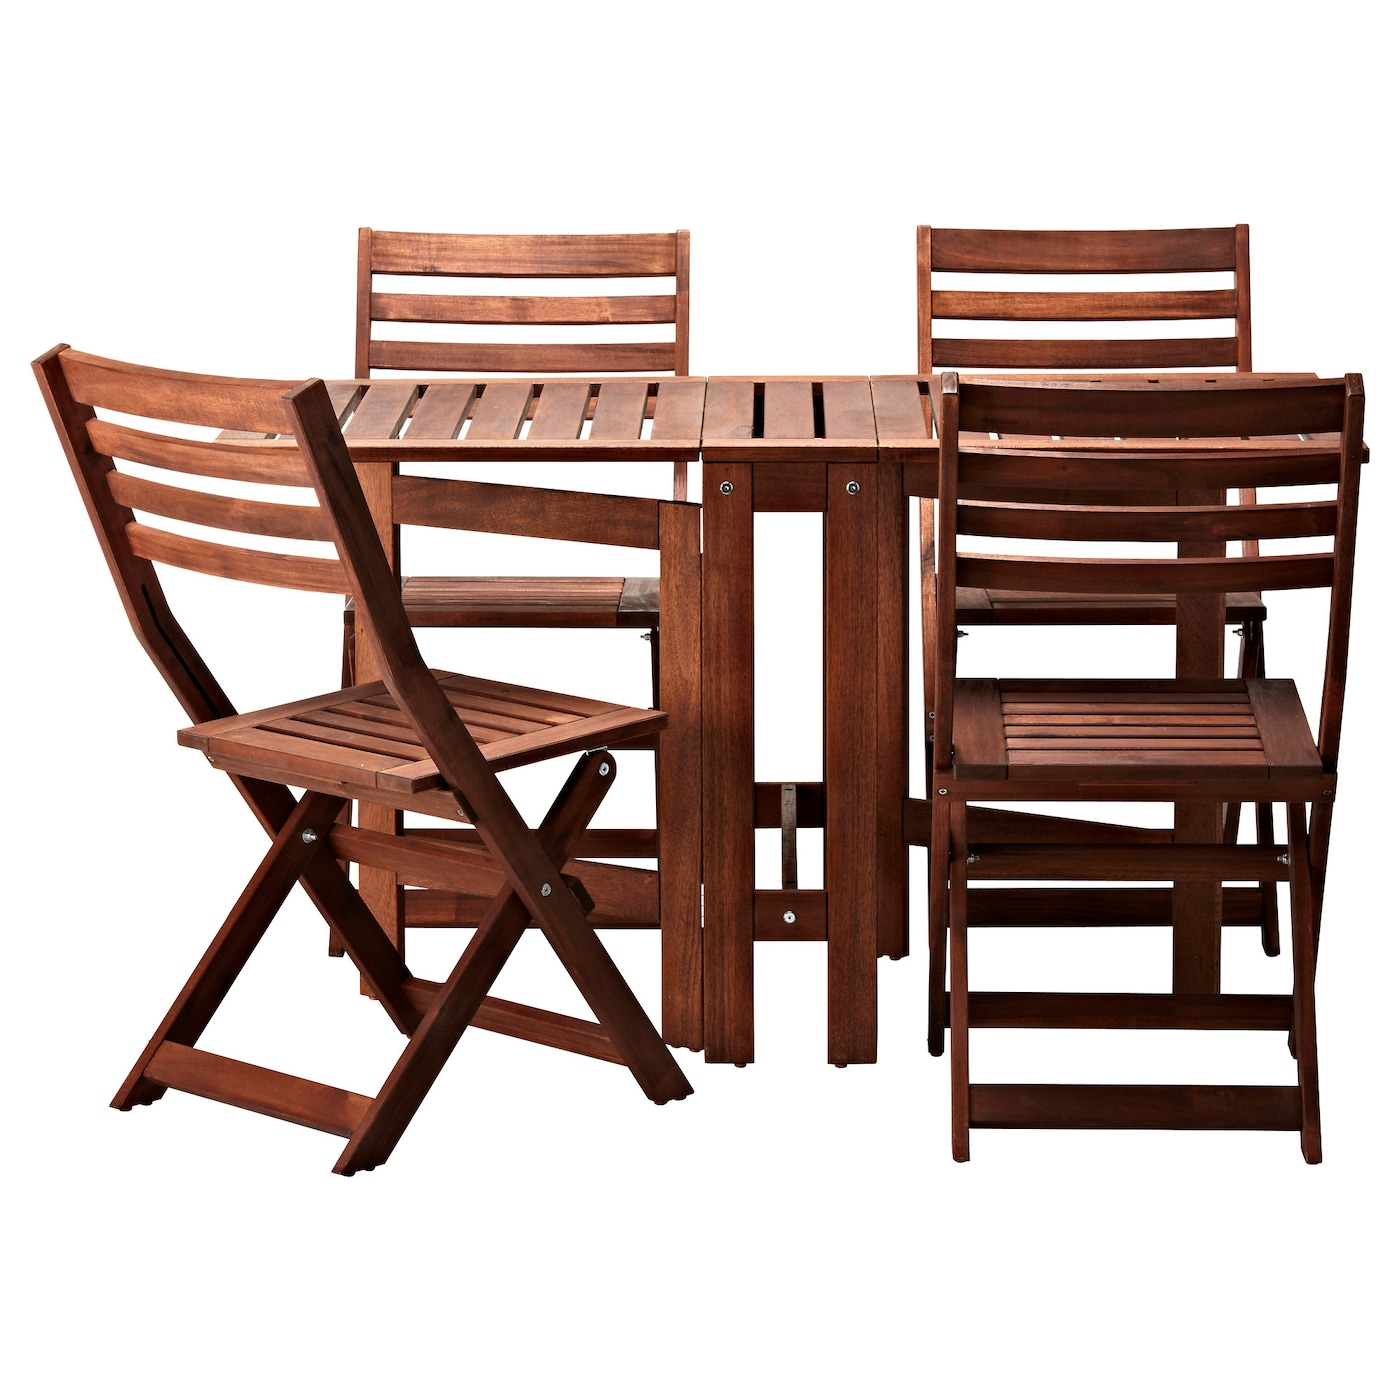 ikea pplar table4 folding chairs outdoor